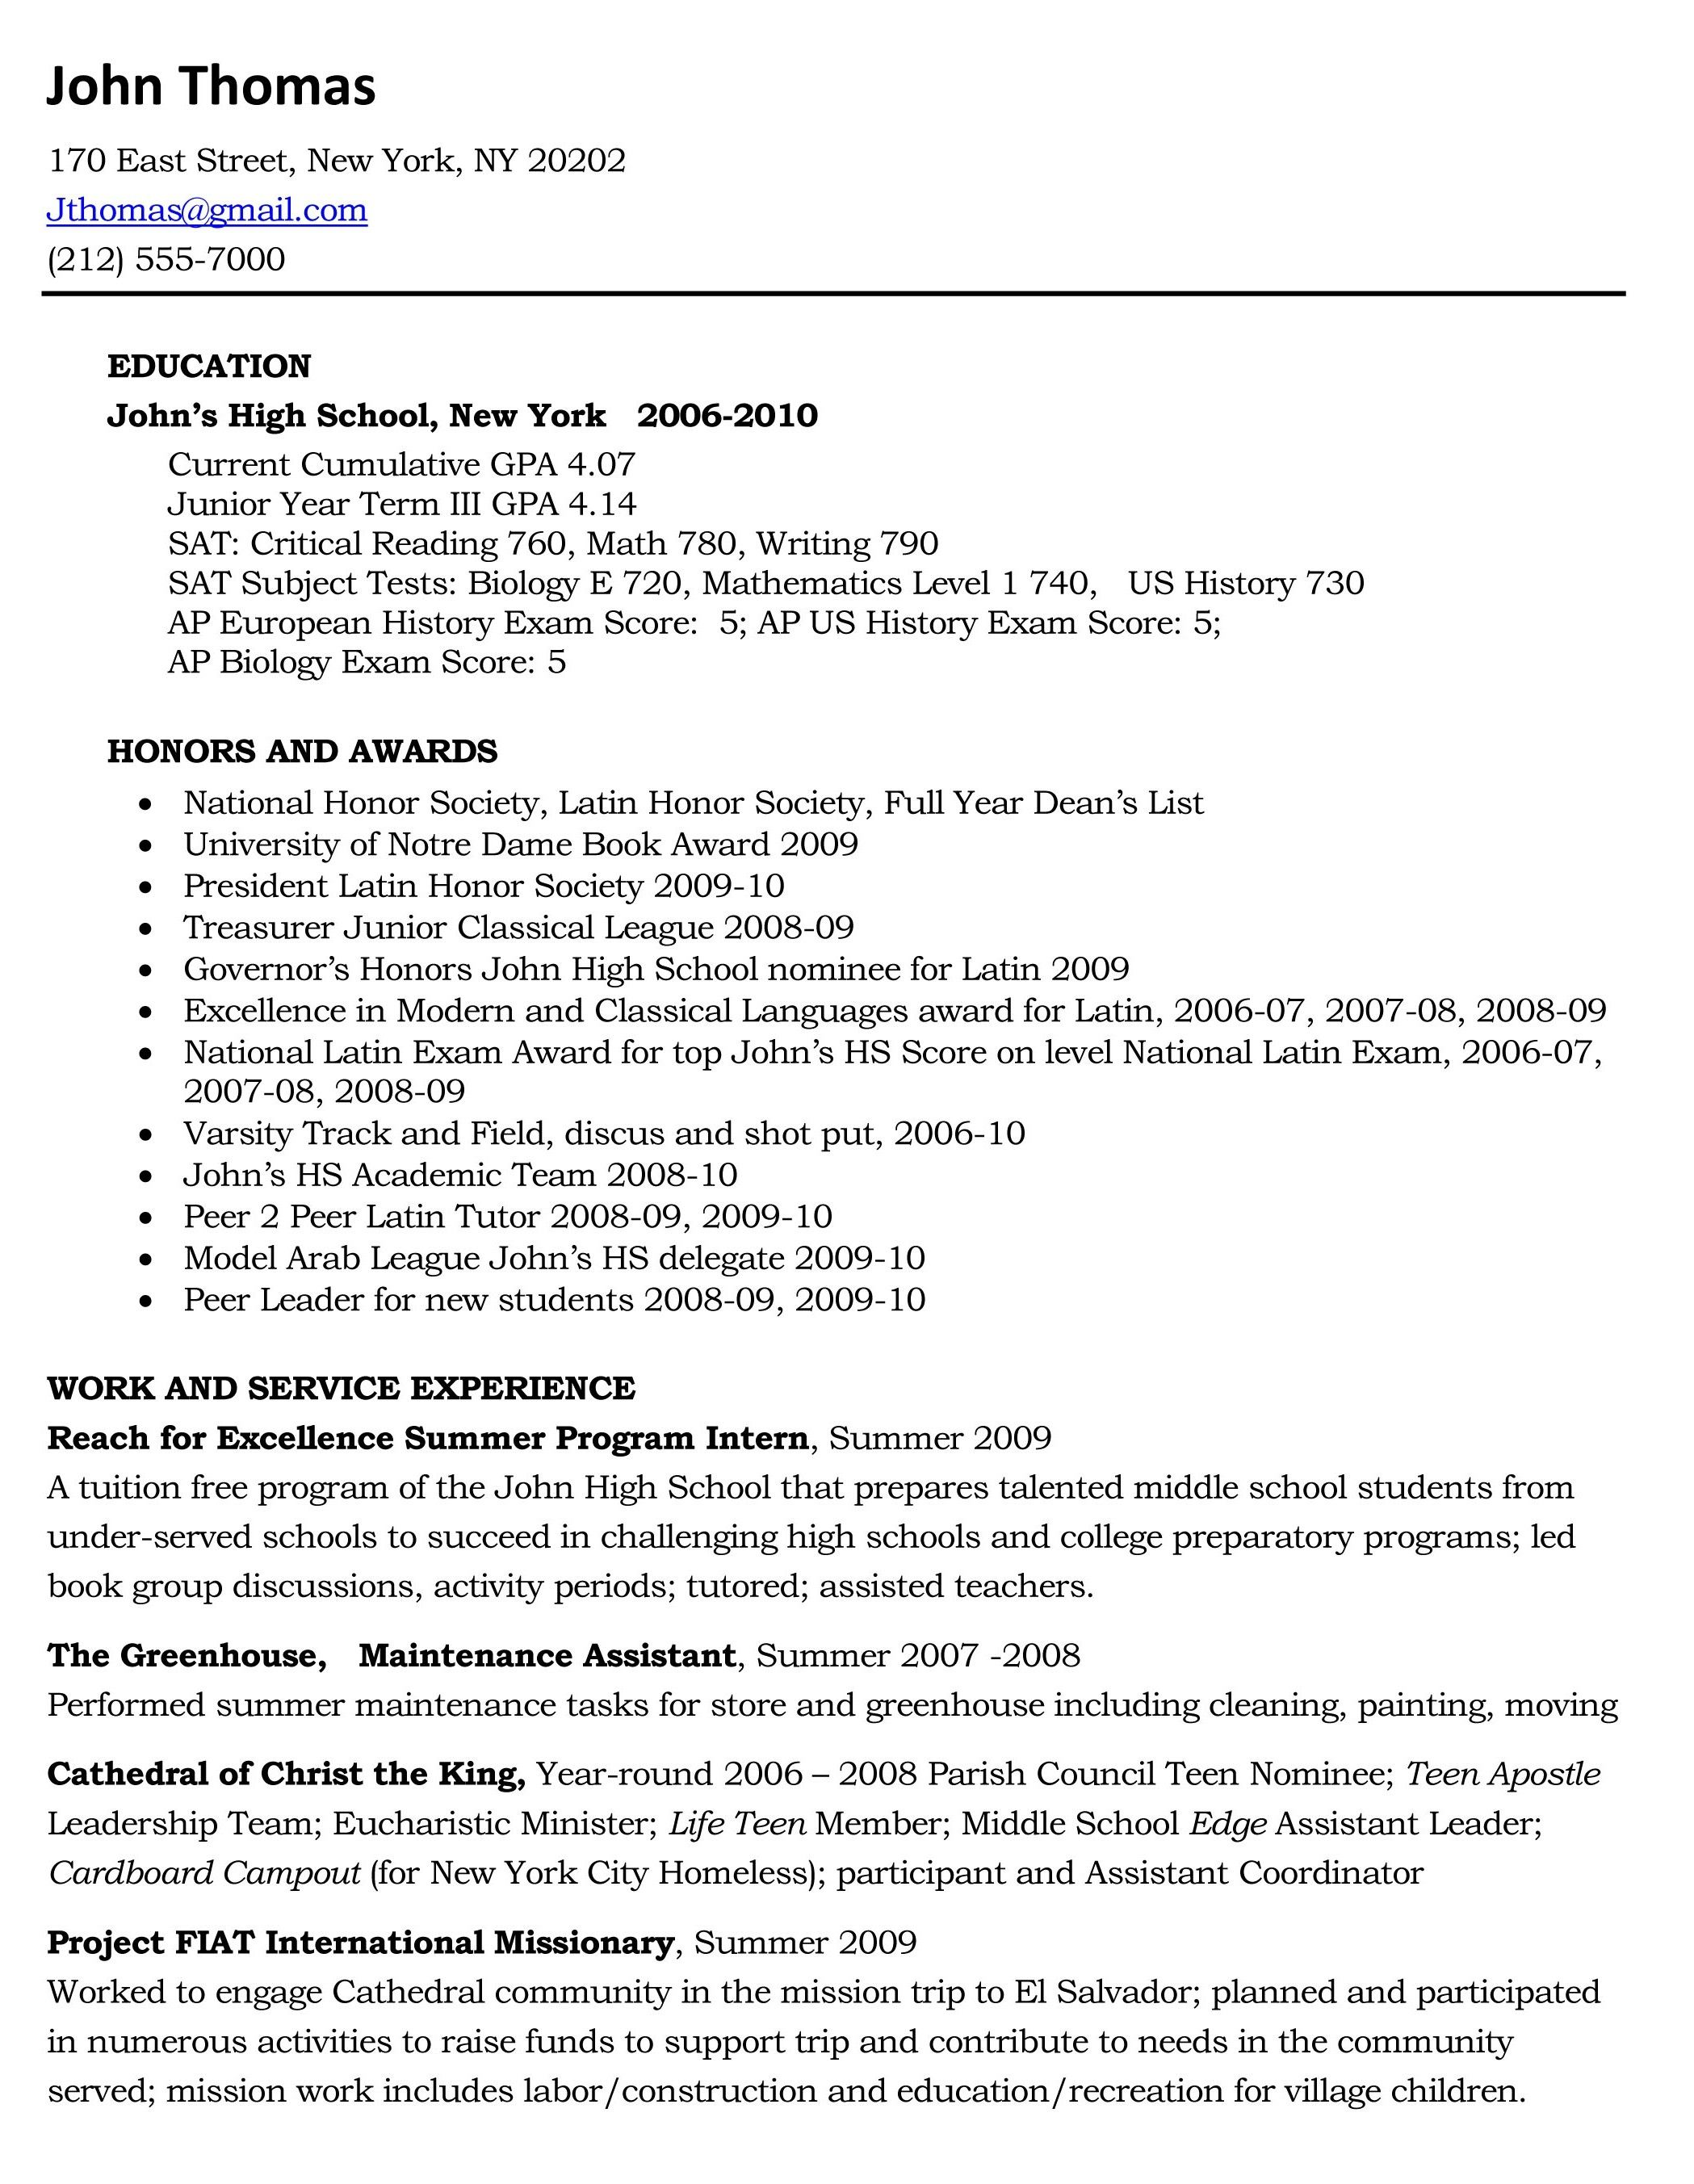 Resume Examples For College Students College Sample High School Resume For Application New Admission